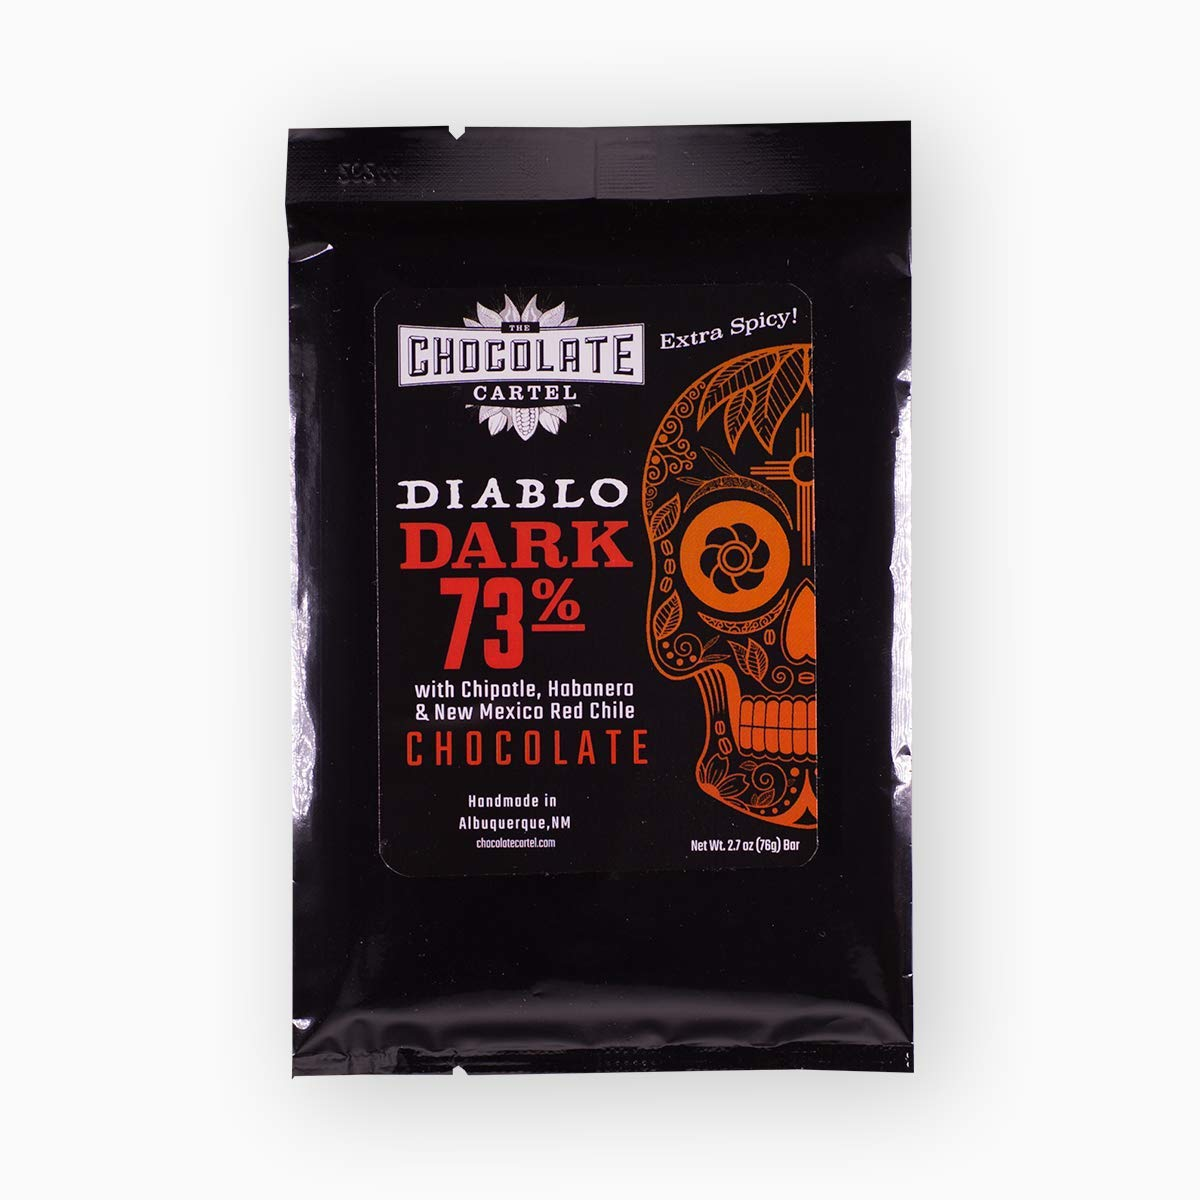 Amazon.com : Diablo Xtra Spicy Dark Chocolate Bar : Grocery ...